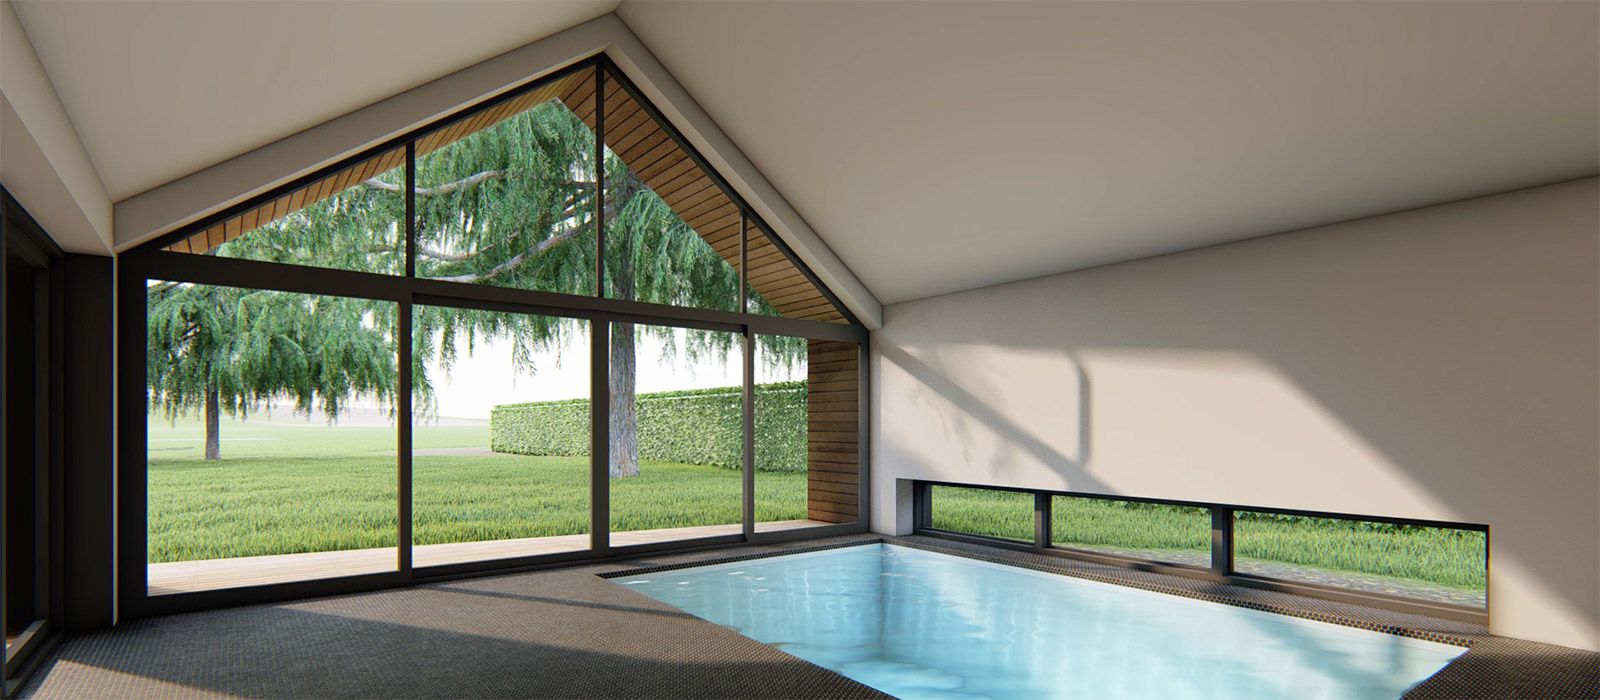 gyd-architecture | 3D internal of pool